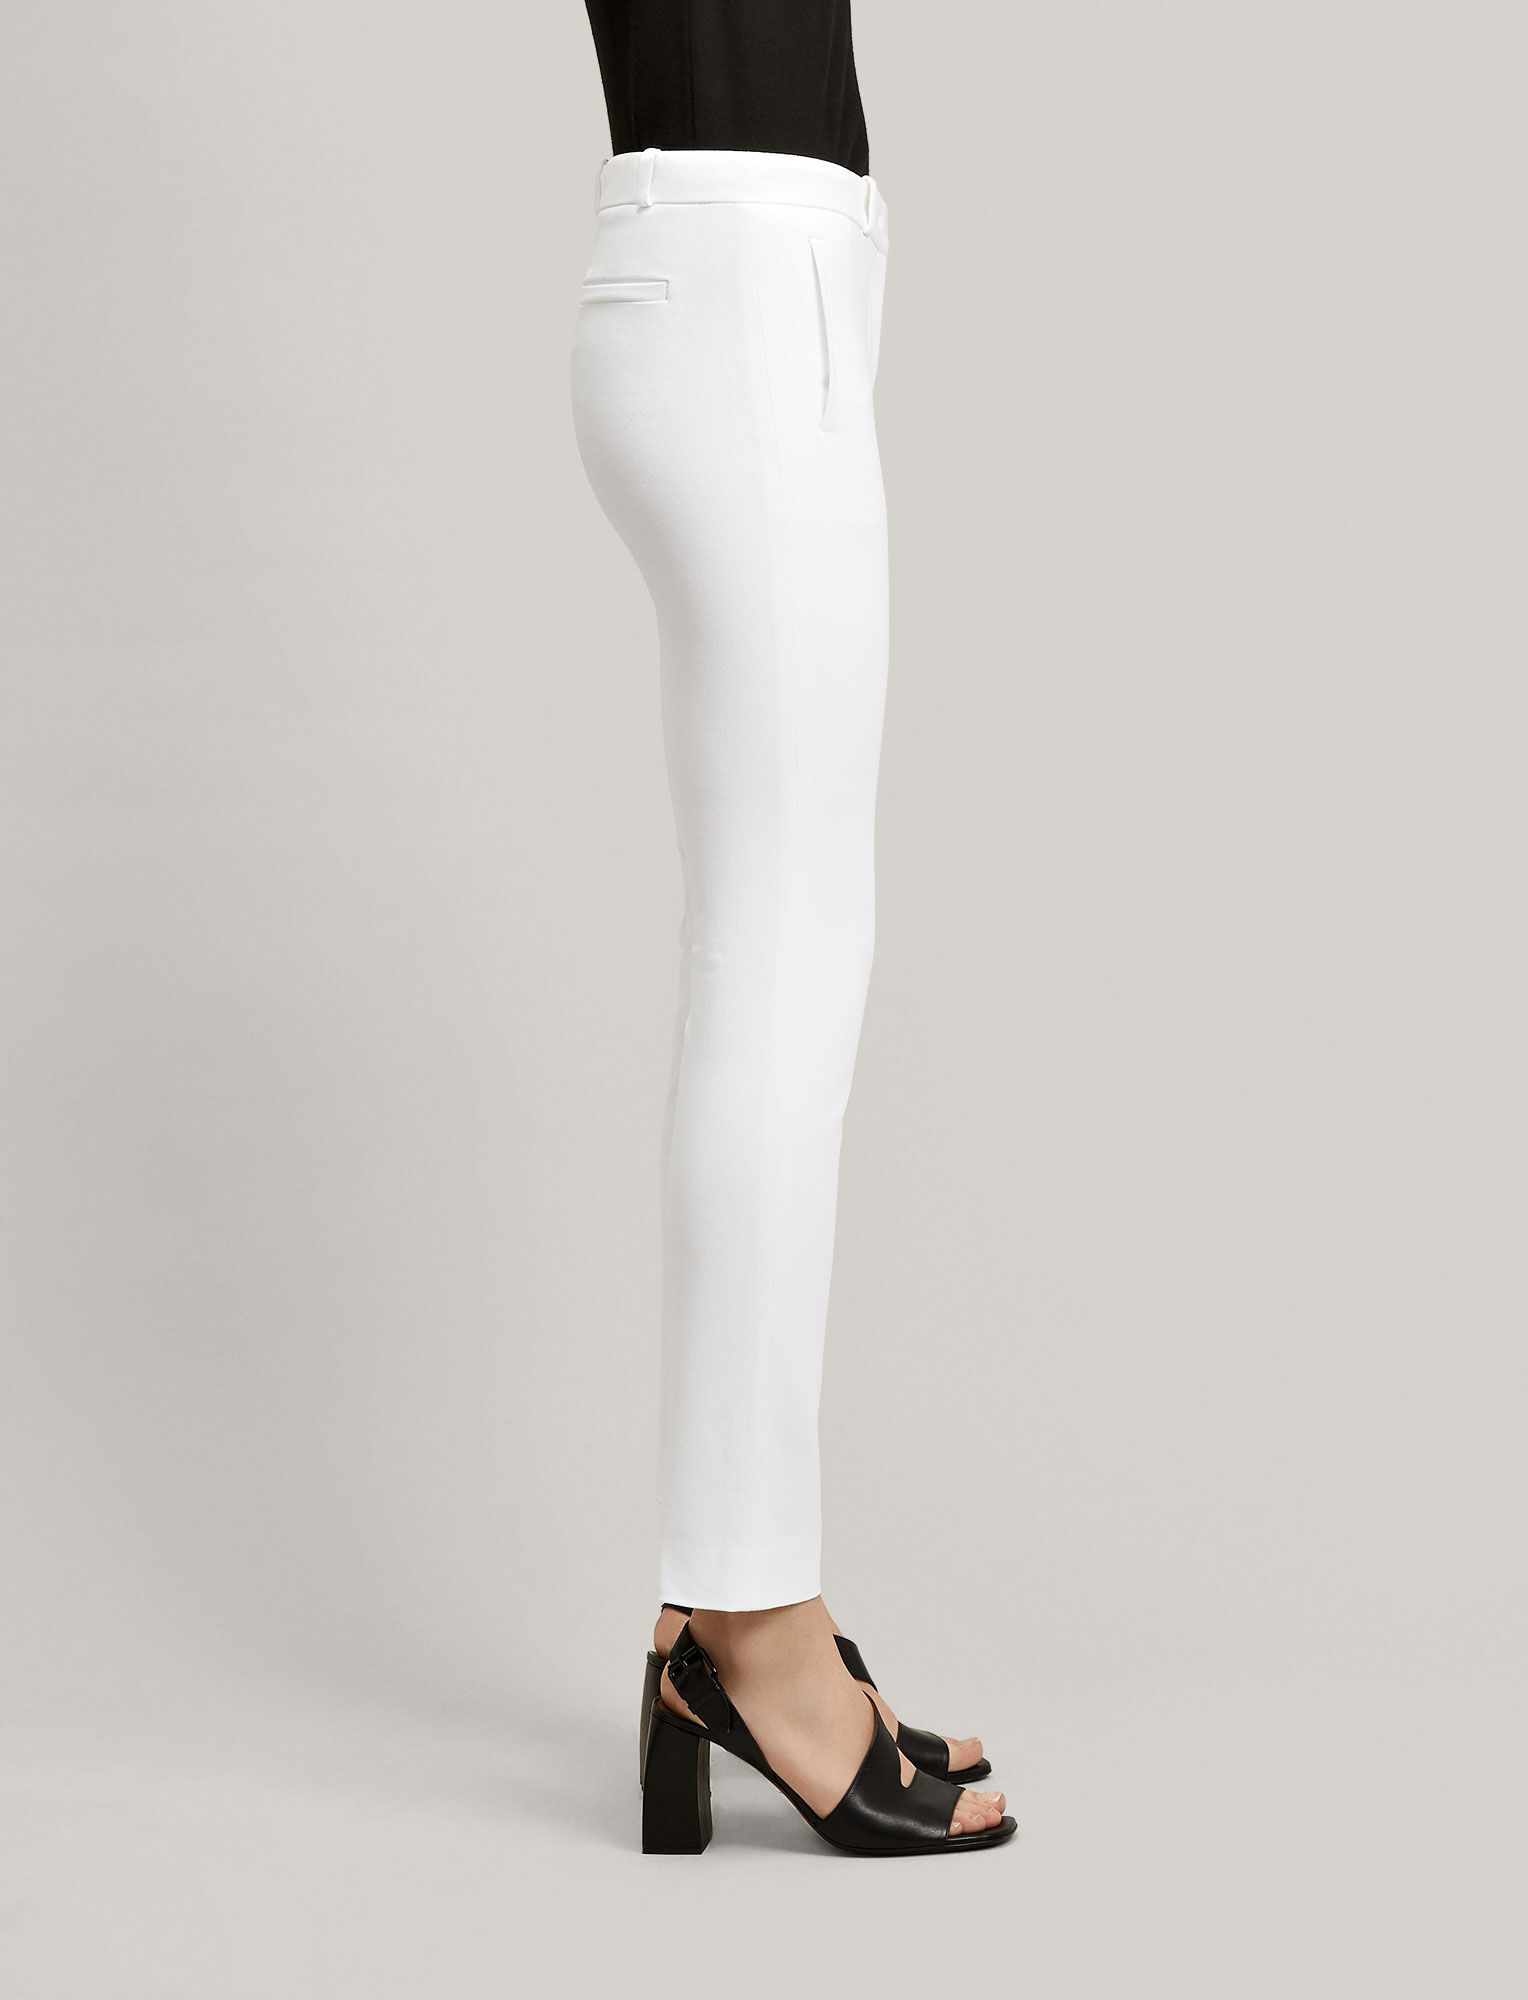 Joseph, New Eliston Gabardine Stretch Trousers, in WHITE